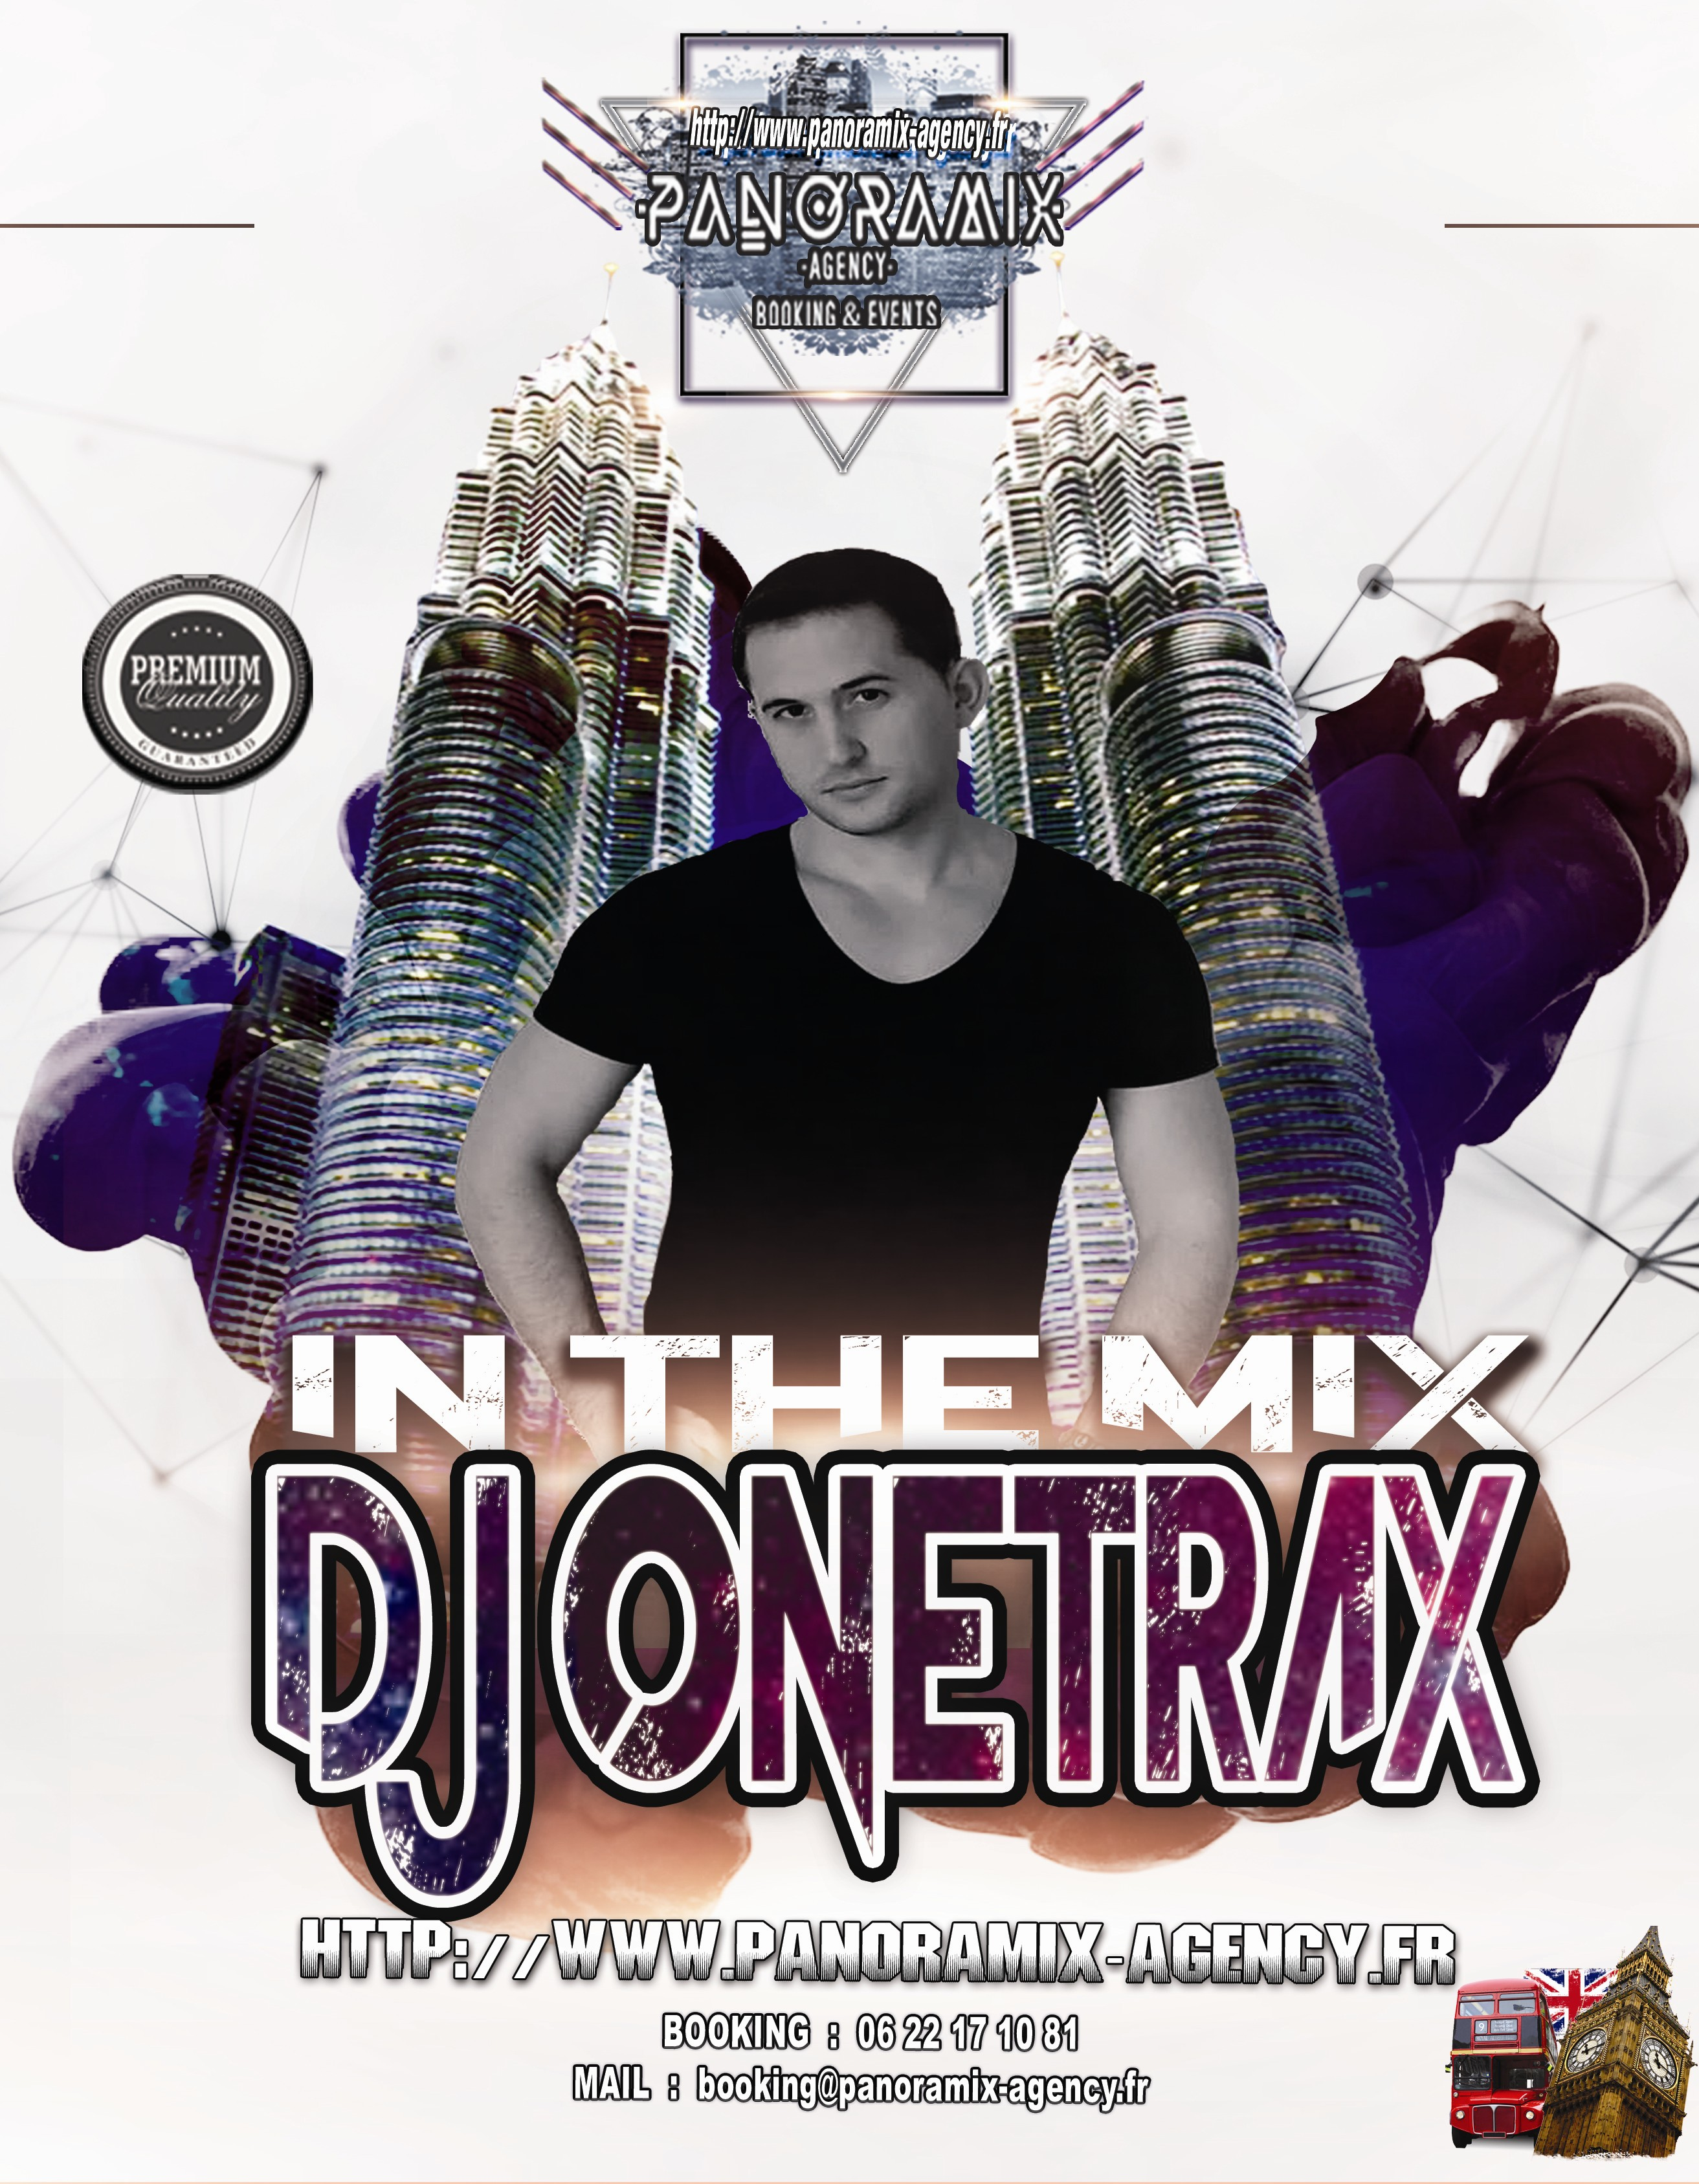 https://panoramix-radio-station.com/wp-content/uploads/2017/07/ONETRAX-IN-THE-MIX1-.jpg